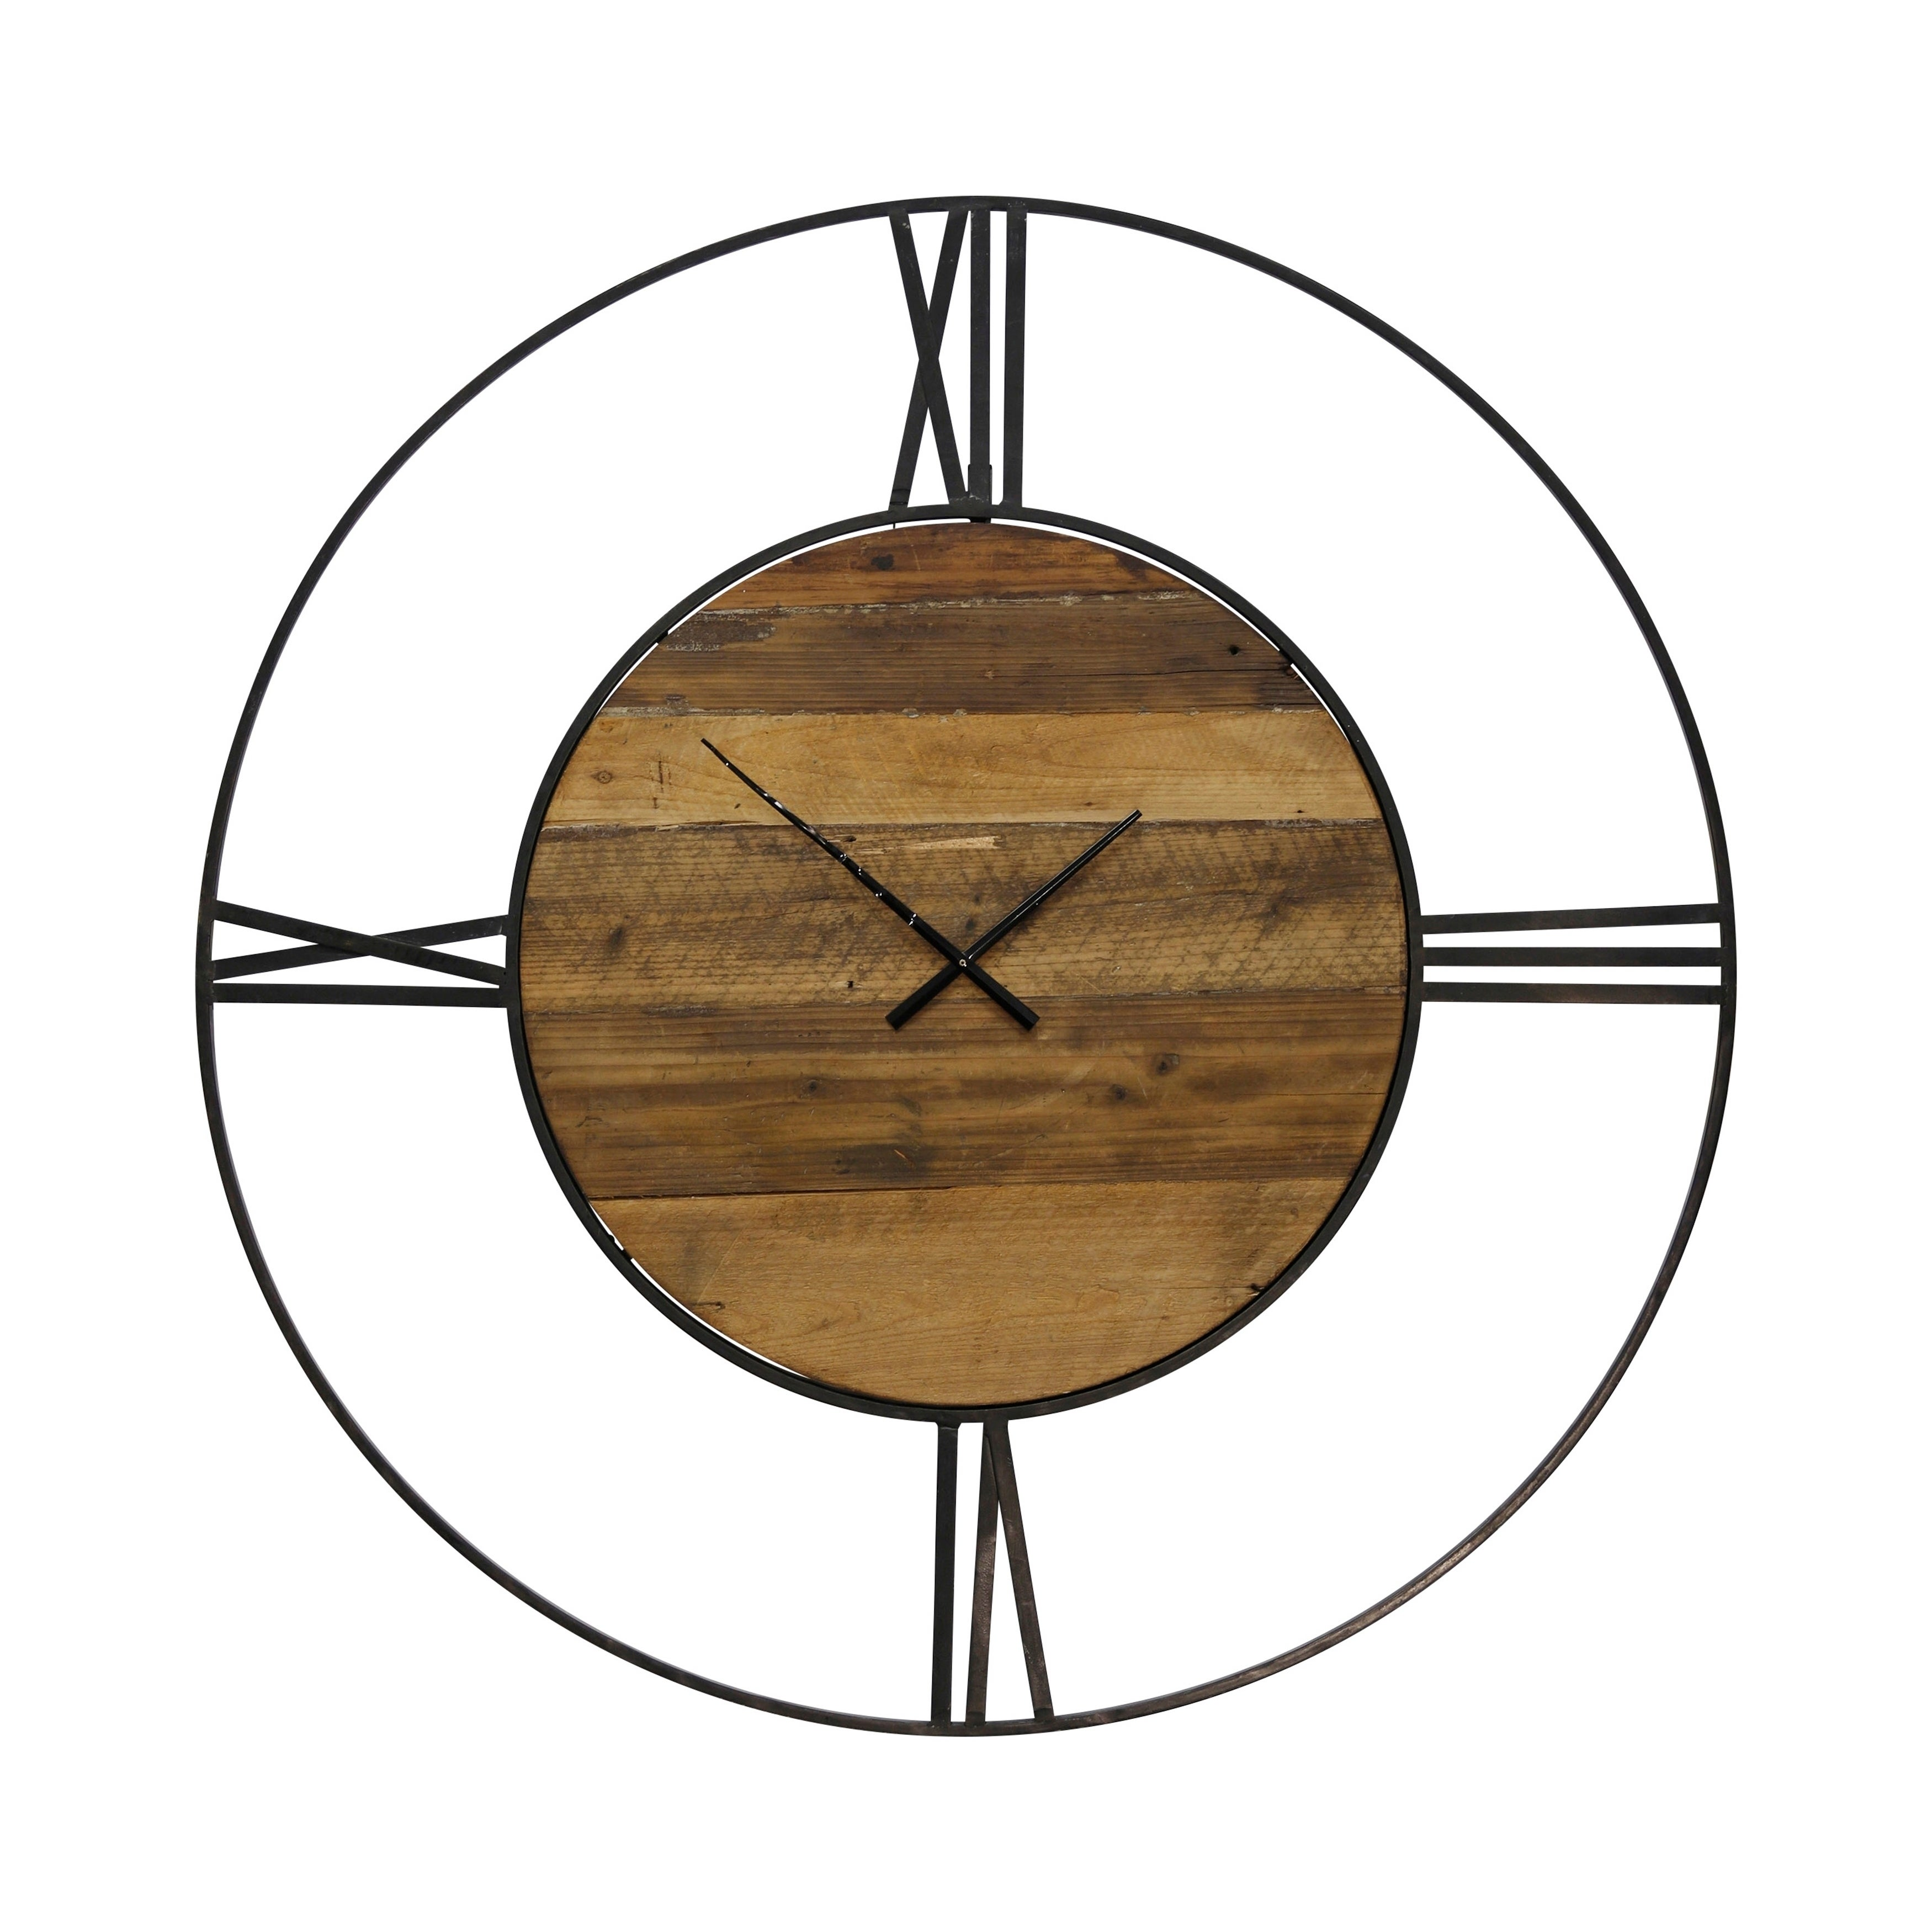 Round Wall Clock with Roman Numerals on Metal Open Frame That Surrounds Wood Face